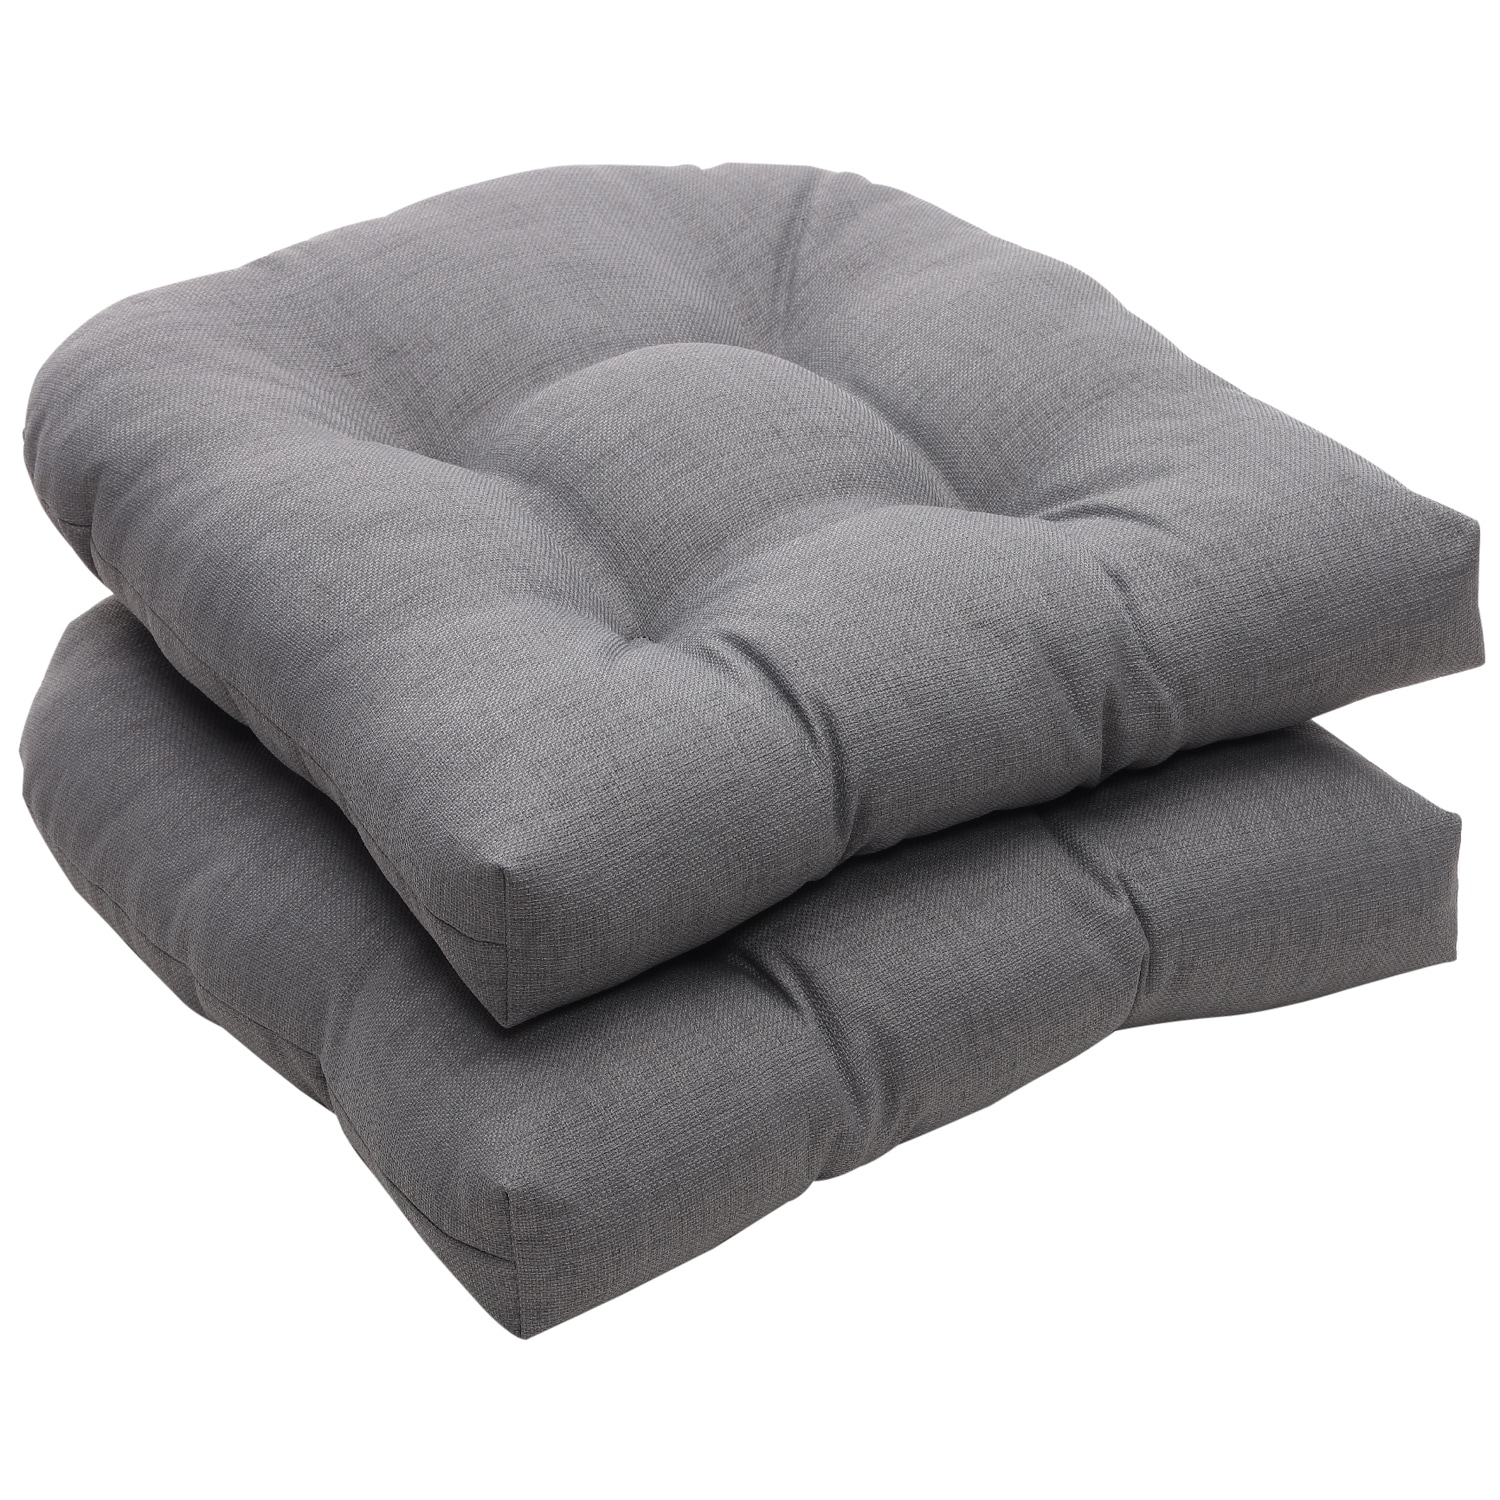 Outdoor Gray Textured Solid Wicker Seat Cushions Set of 2